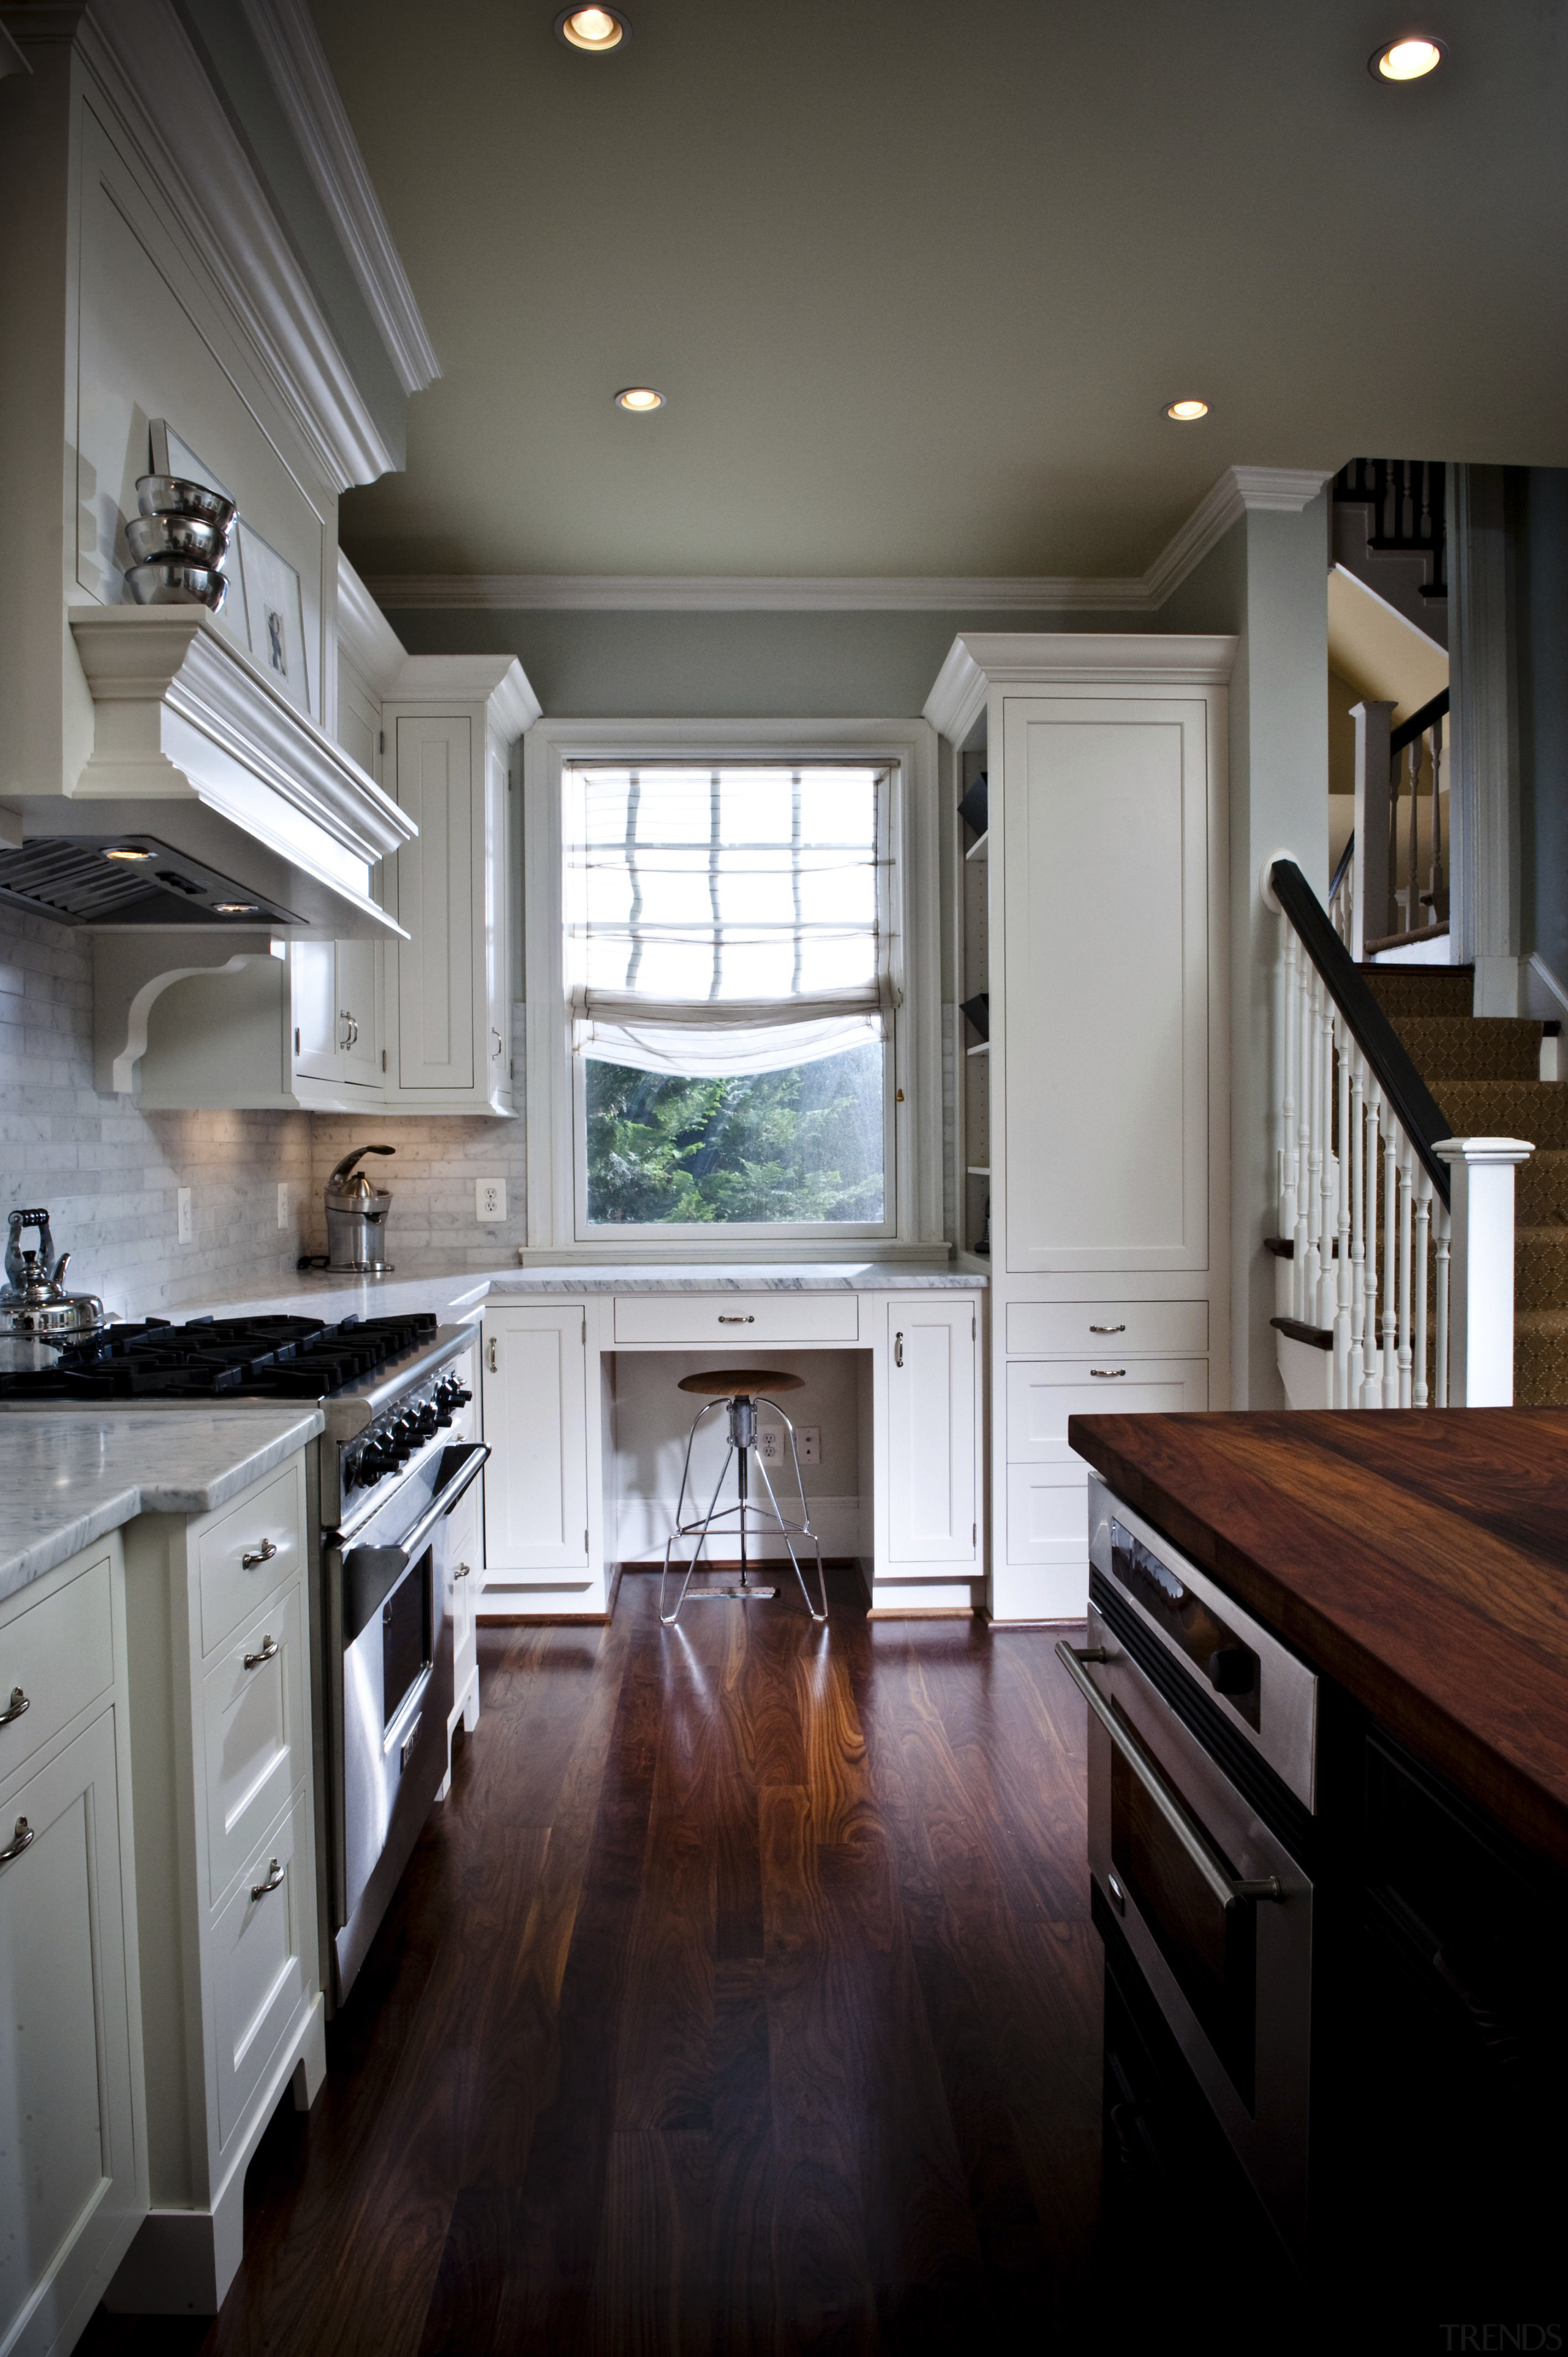 View of kitchen designed by Nadia Subaran. Designed cabinetry, ceiling, countertop, cuisine classique, floor, flooring, hardwood, home, interior design, kitchen, room, under cabinet lighting, window, wood, wood flooring, black, gray